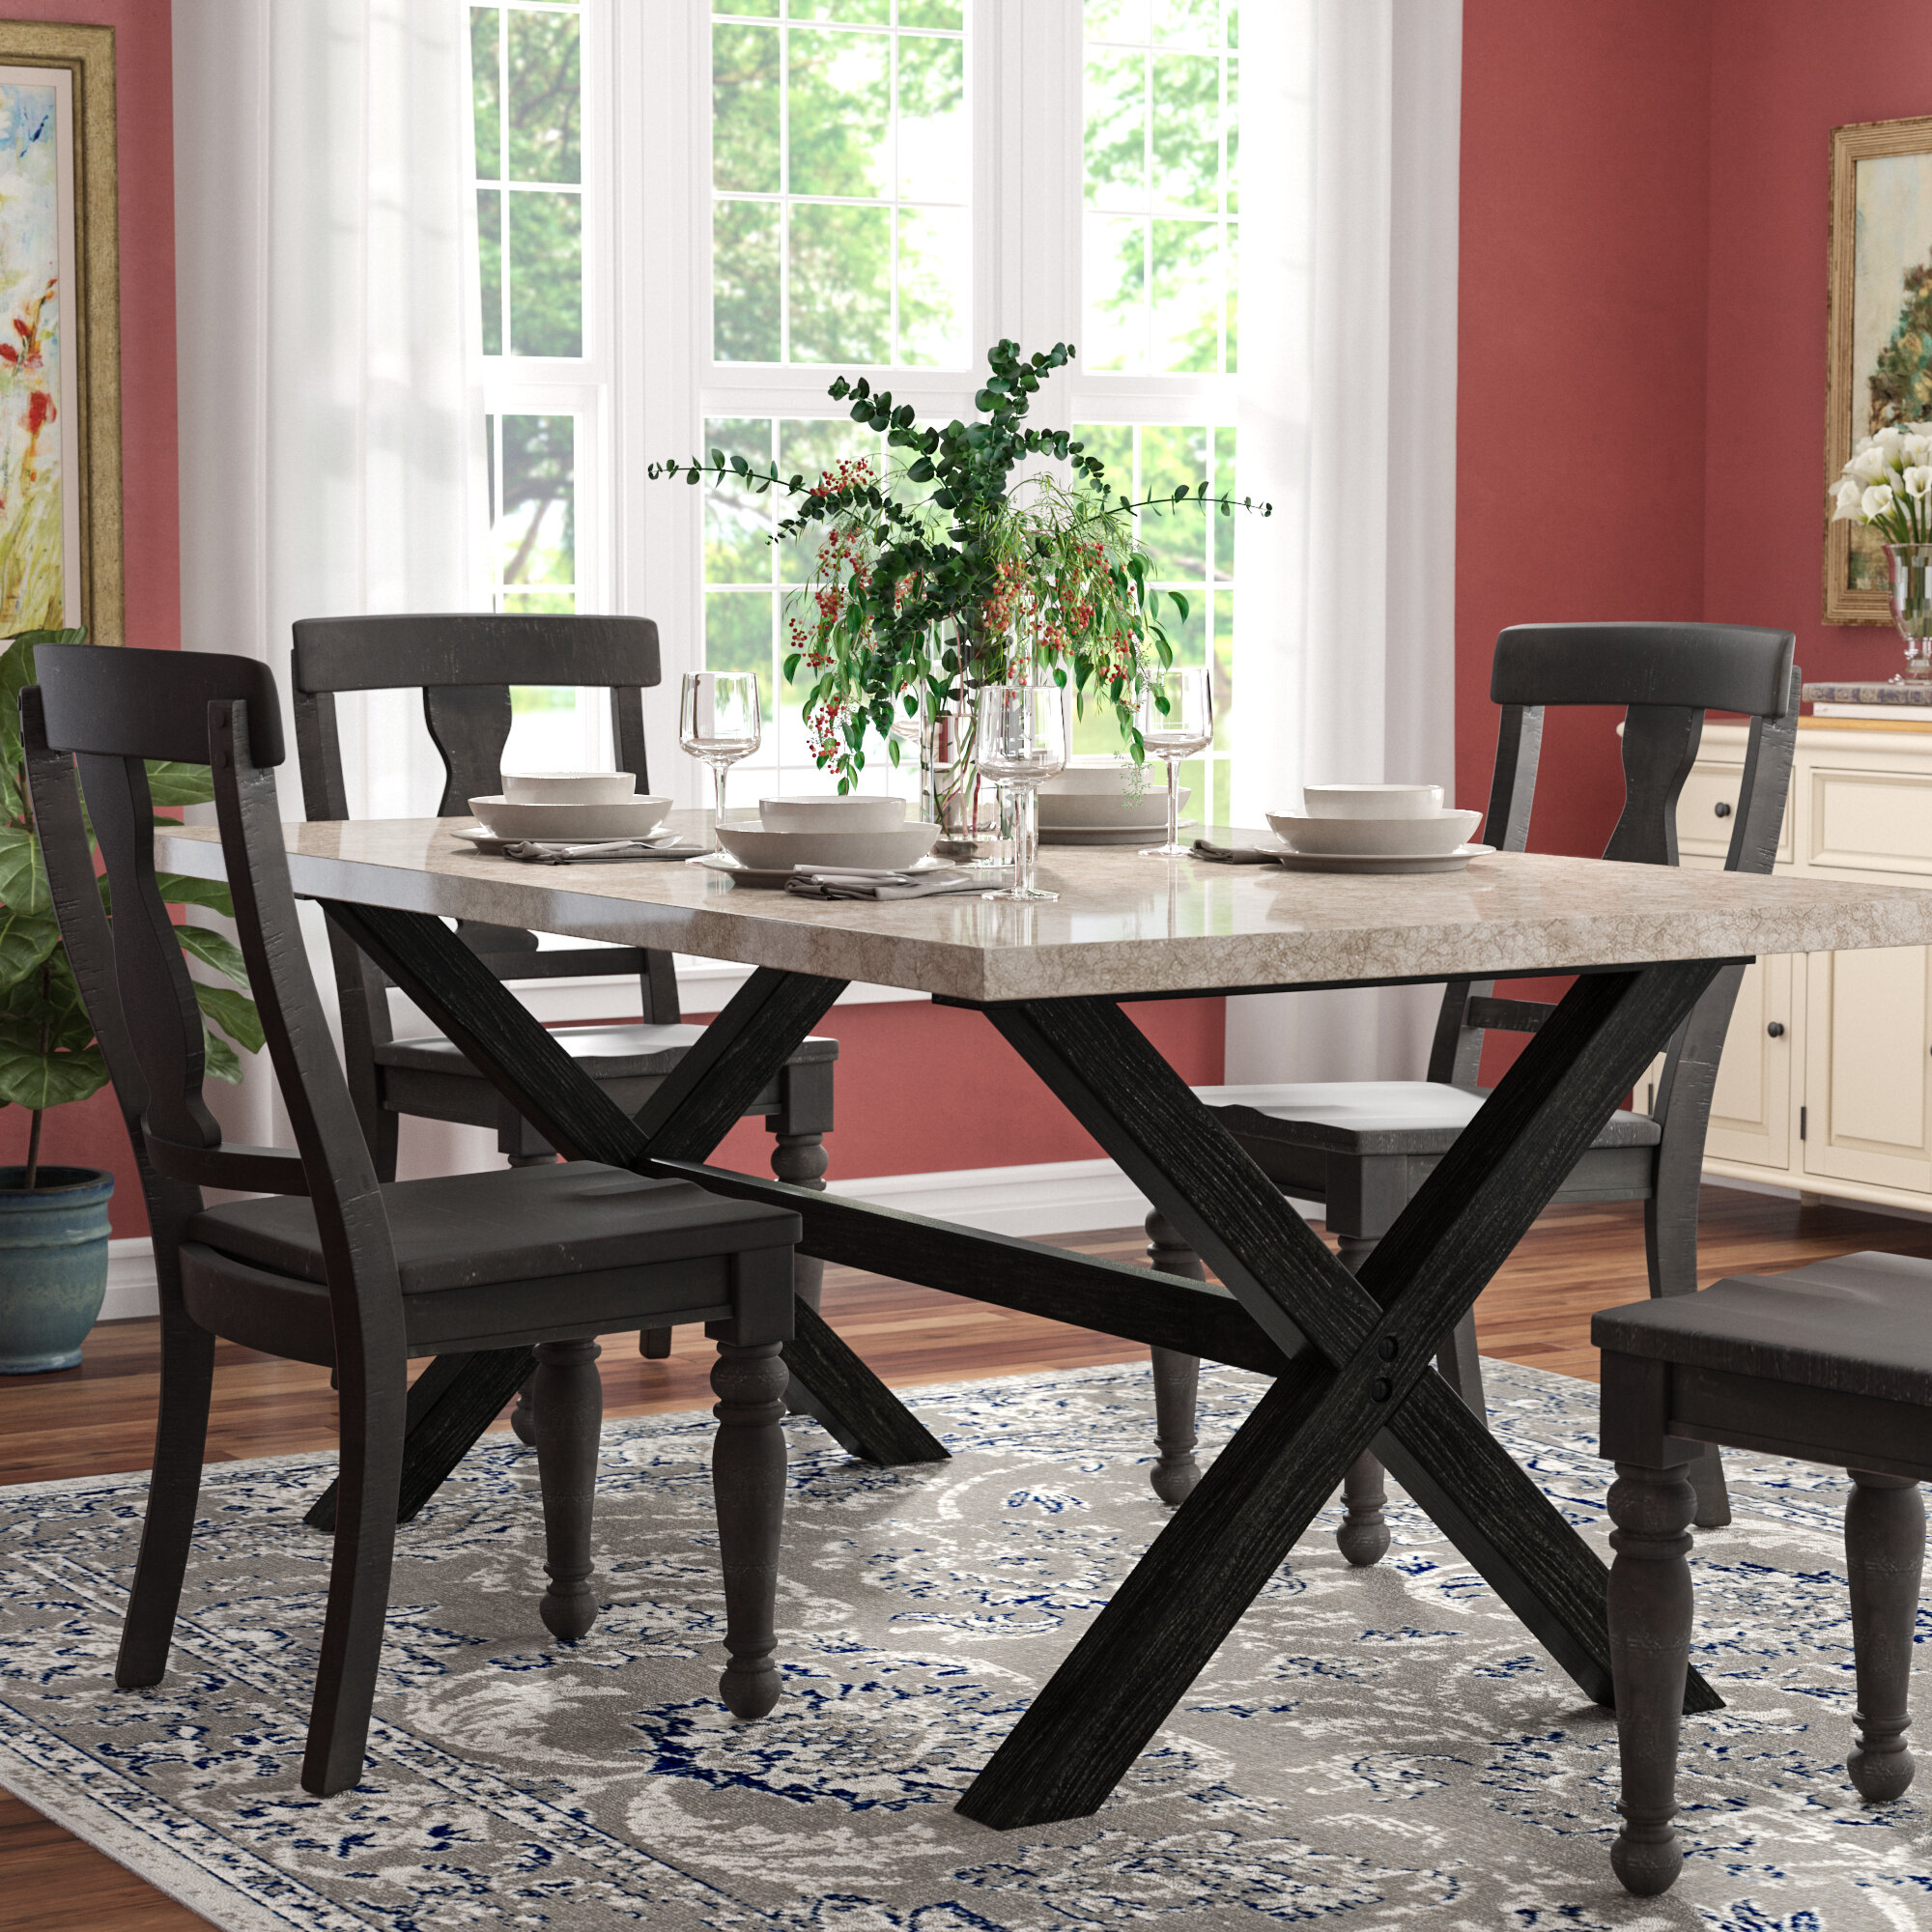 red barrel studio coleville solid wood dining table reviews wayfair rh wayfair com  how to clean real wood kitchen table